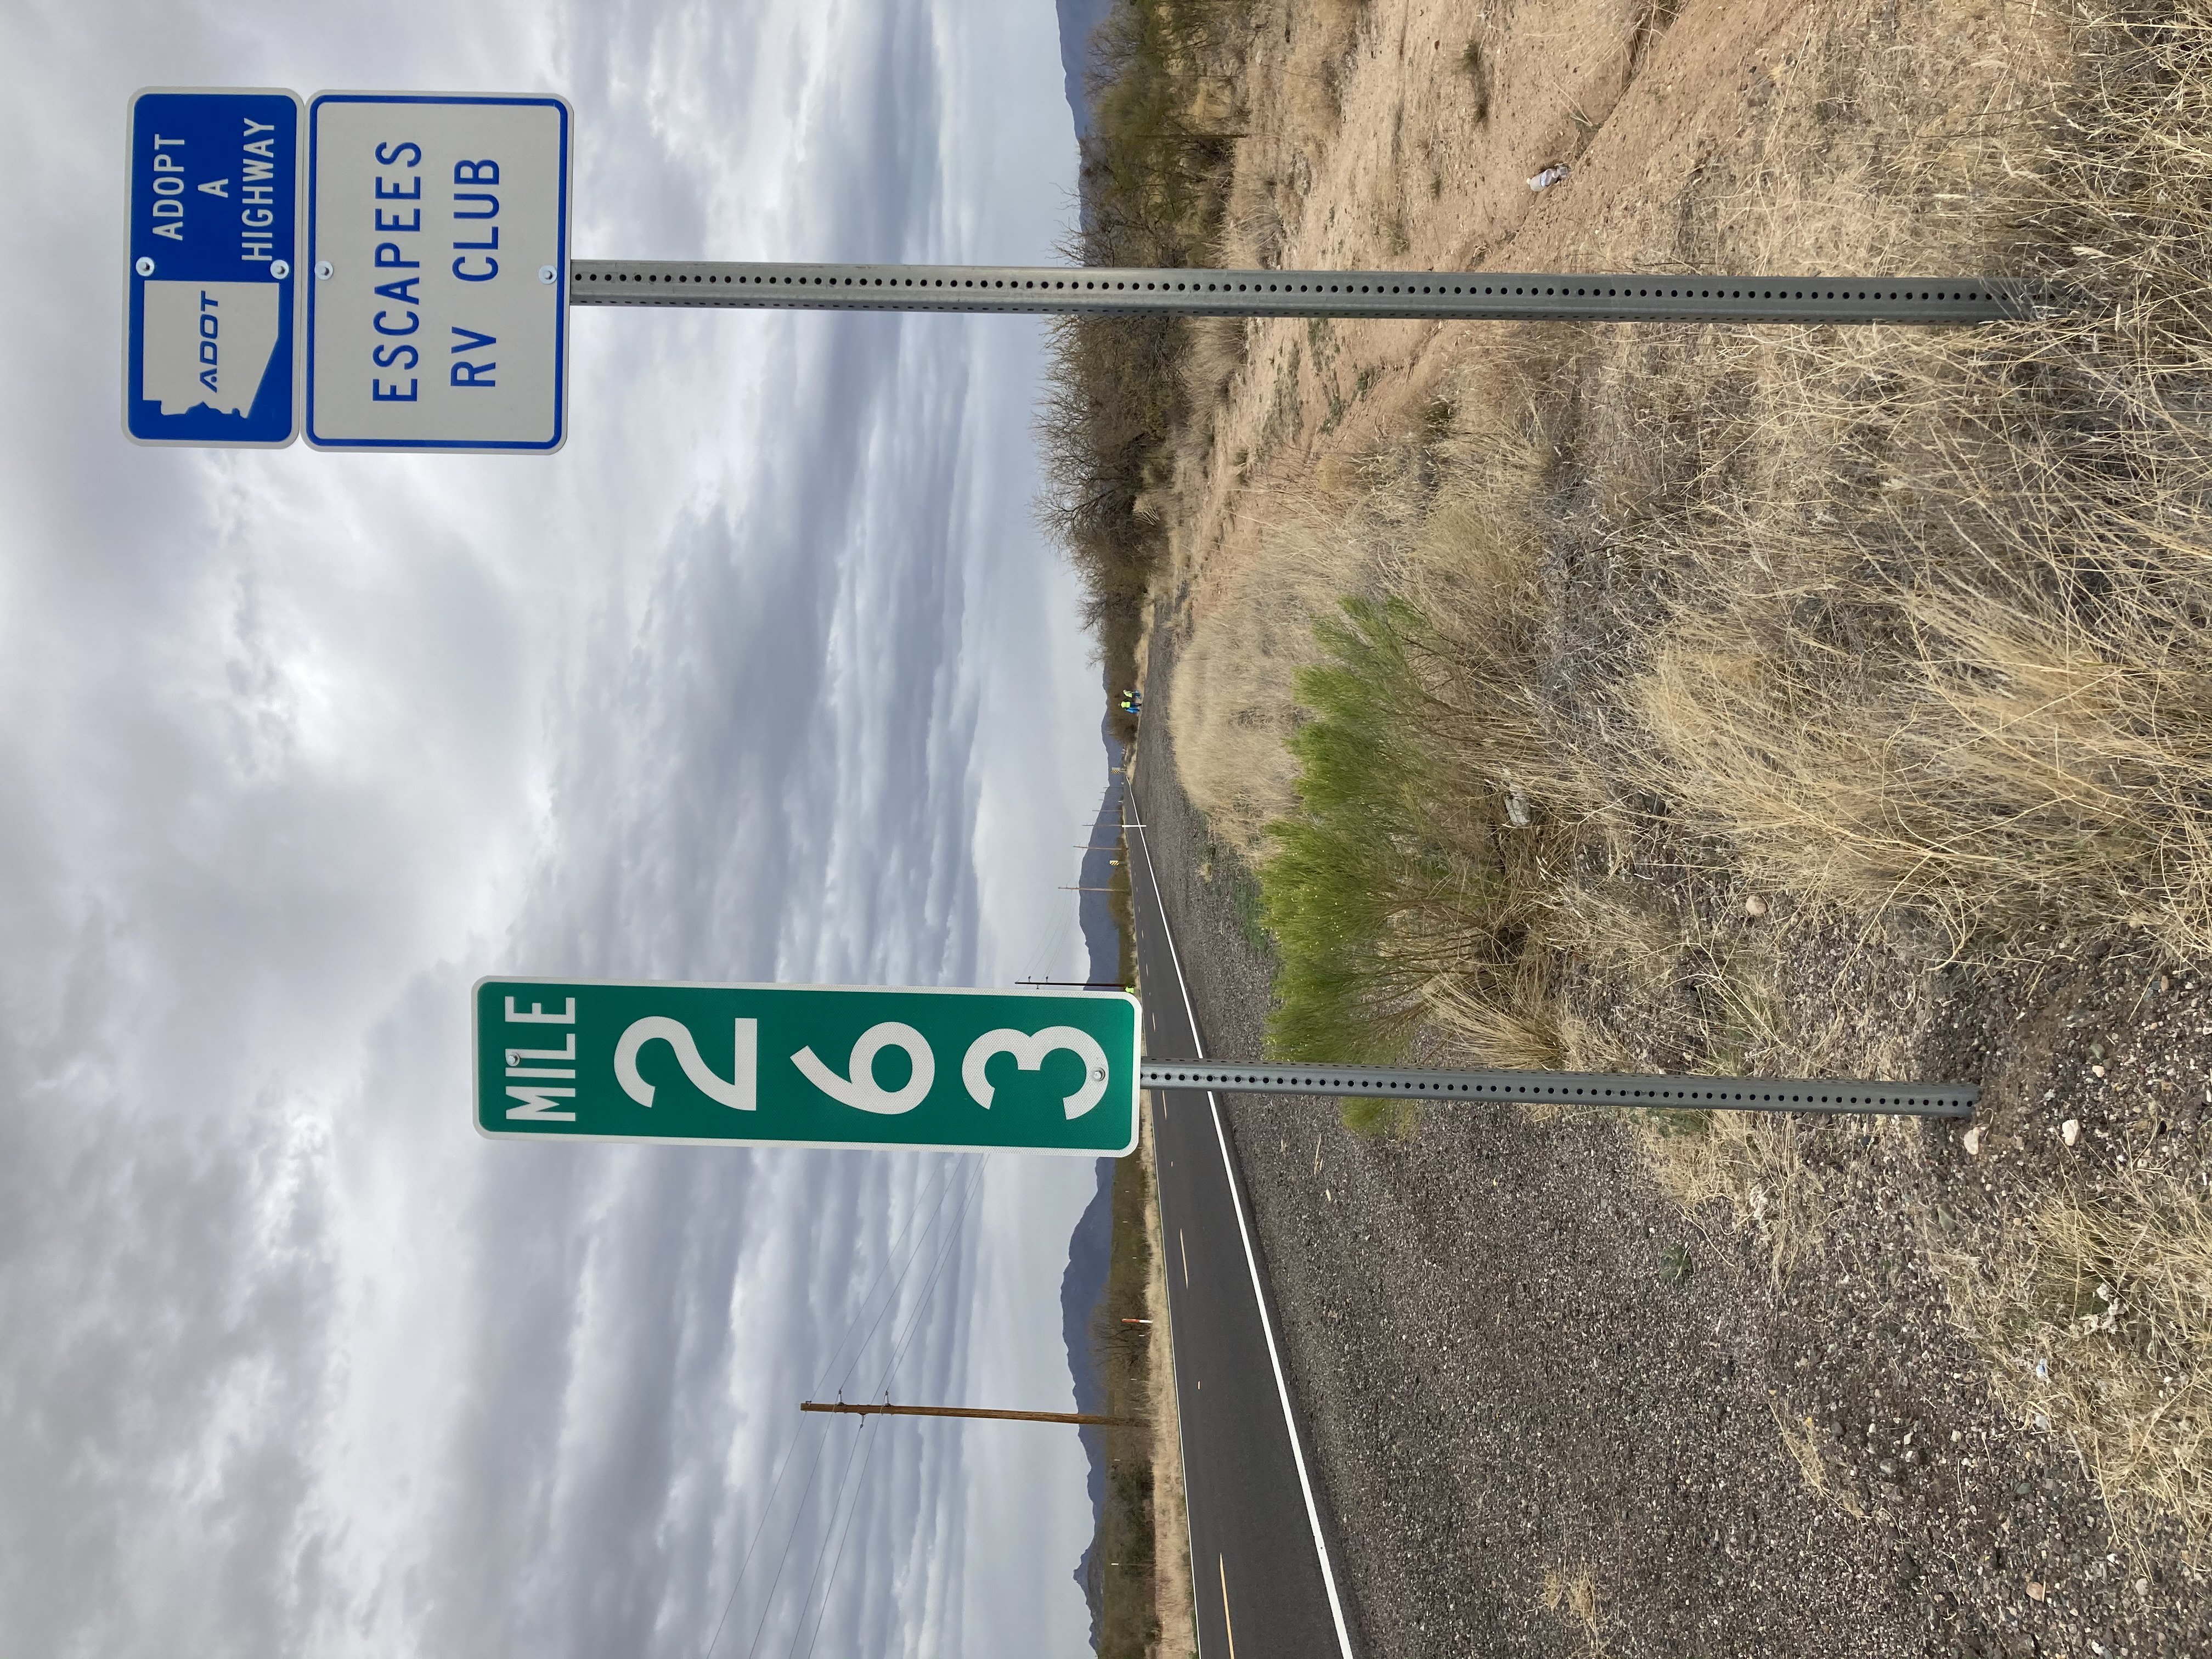 Adopt a Highway State Route 89 litter cleanup Escapers RVers Club